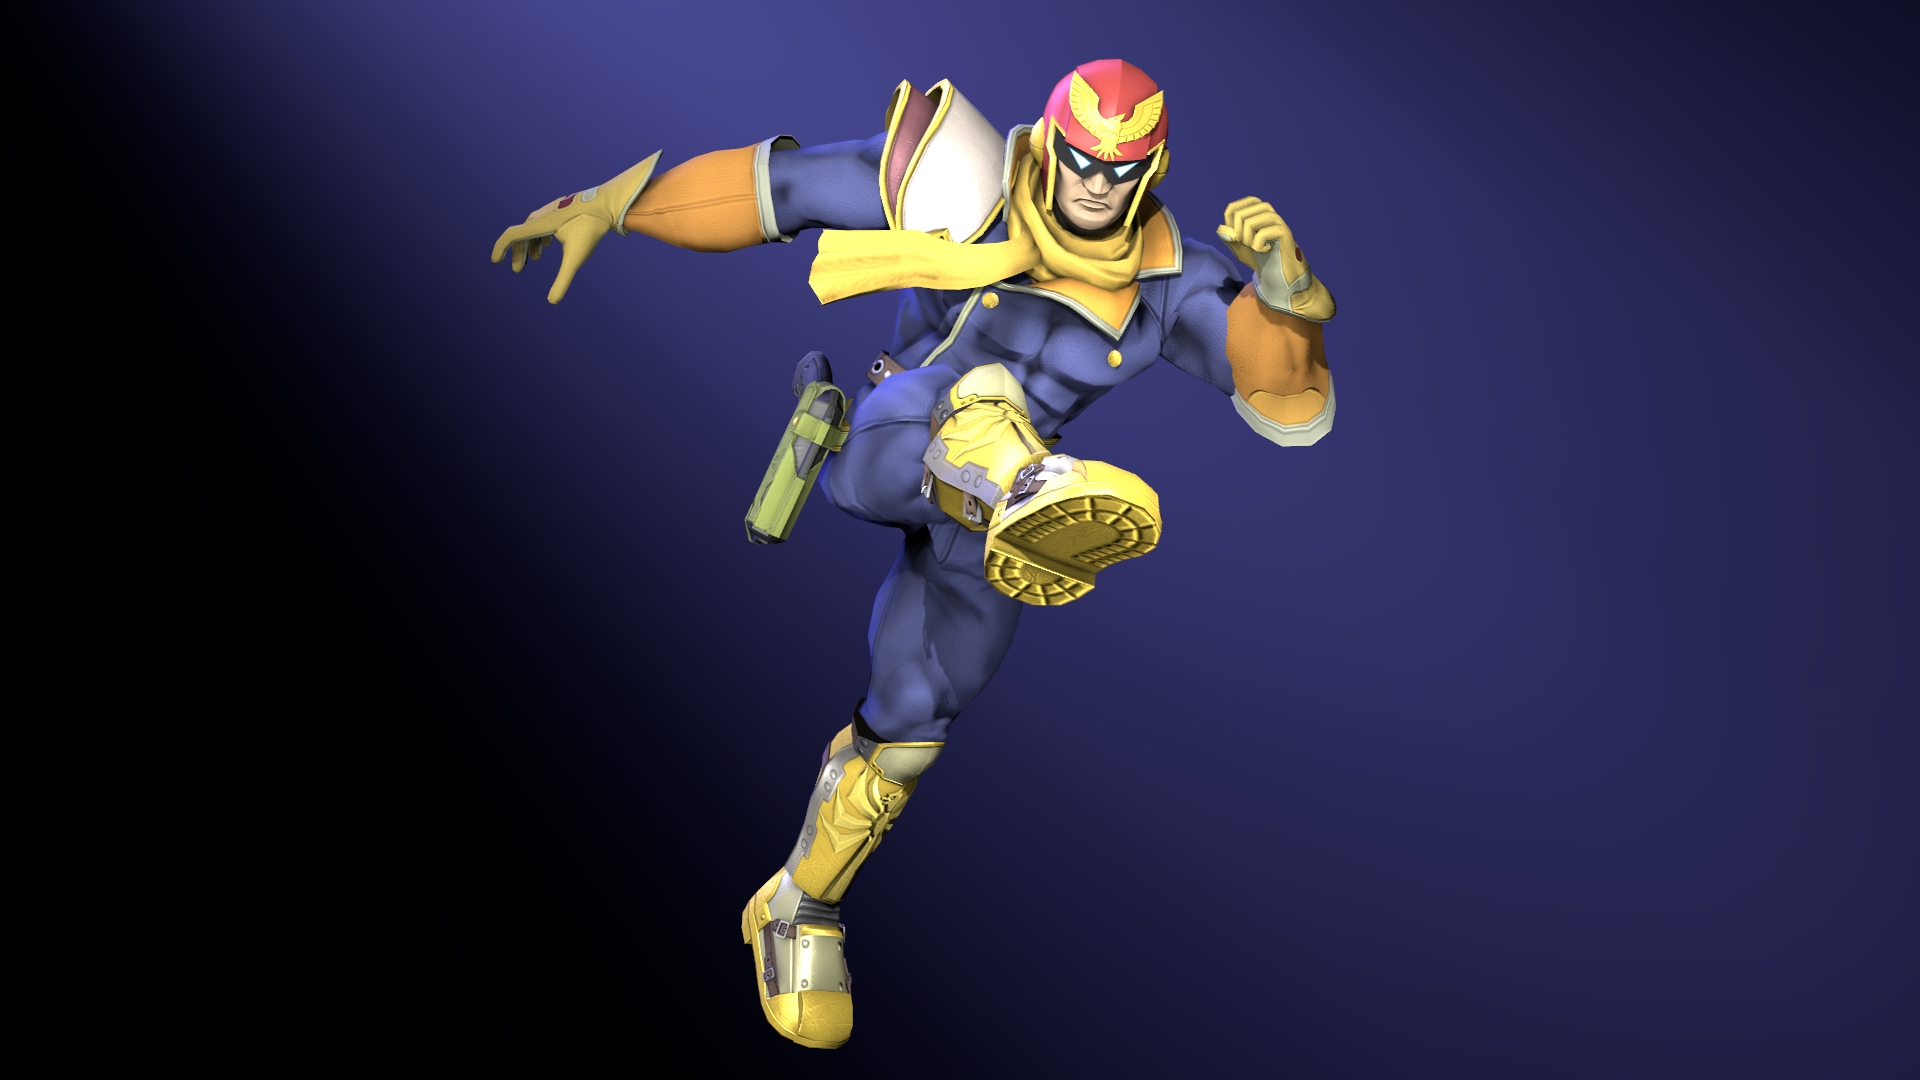 anybody have captain falcon wallpapers? : smashbros